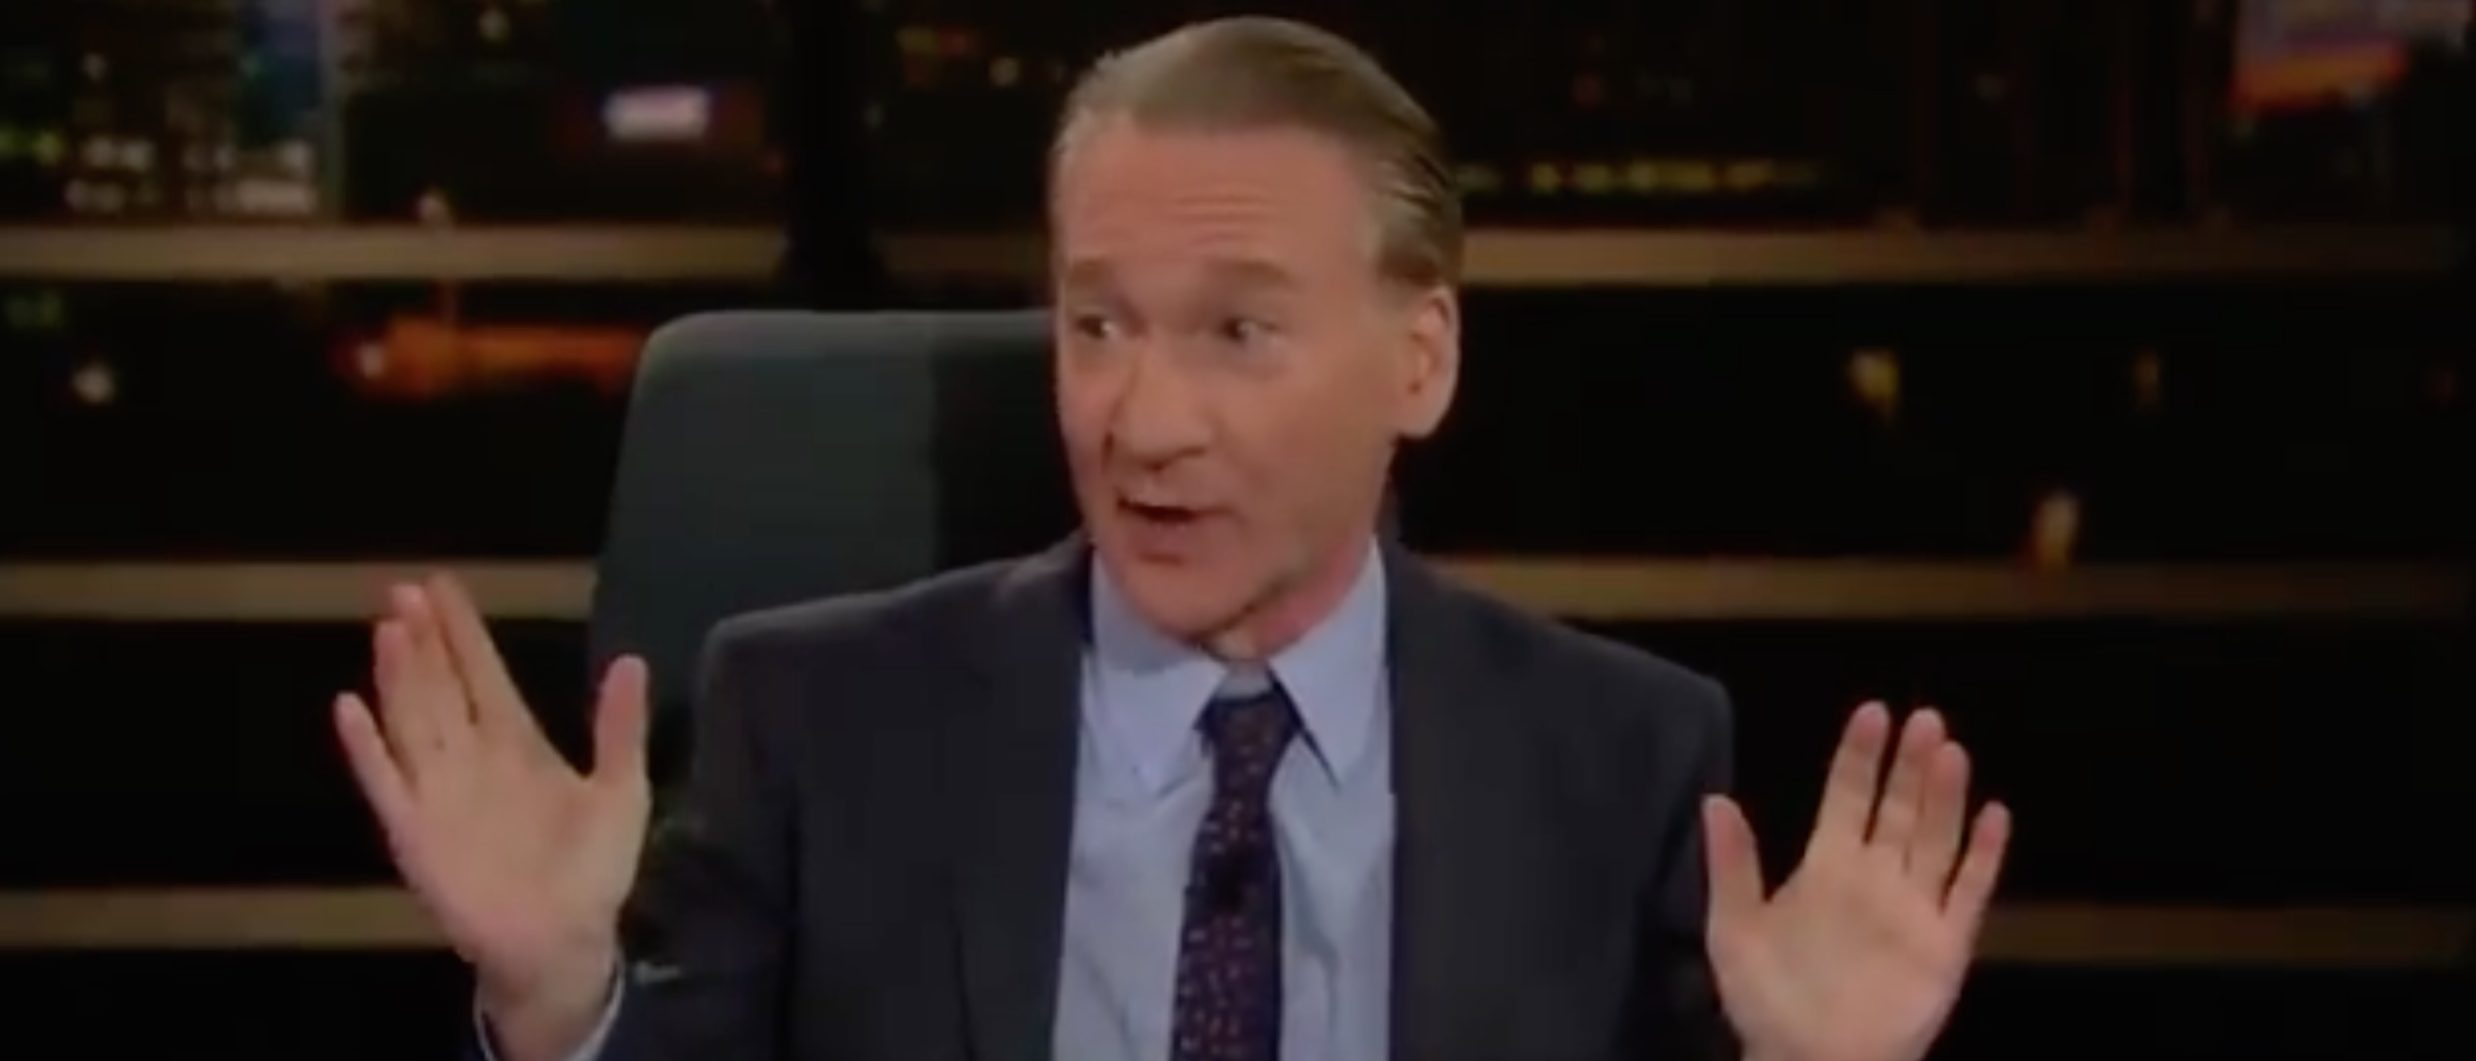 Bill Maher calls for a recession because it will get rid of President Trump./Screenshot